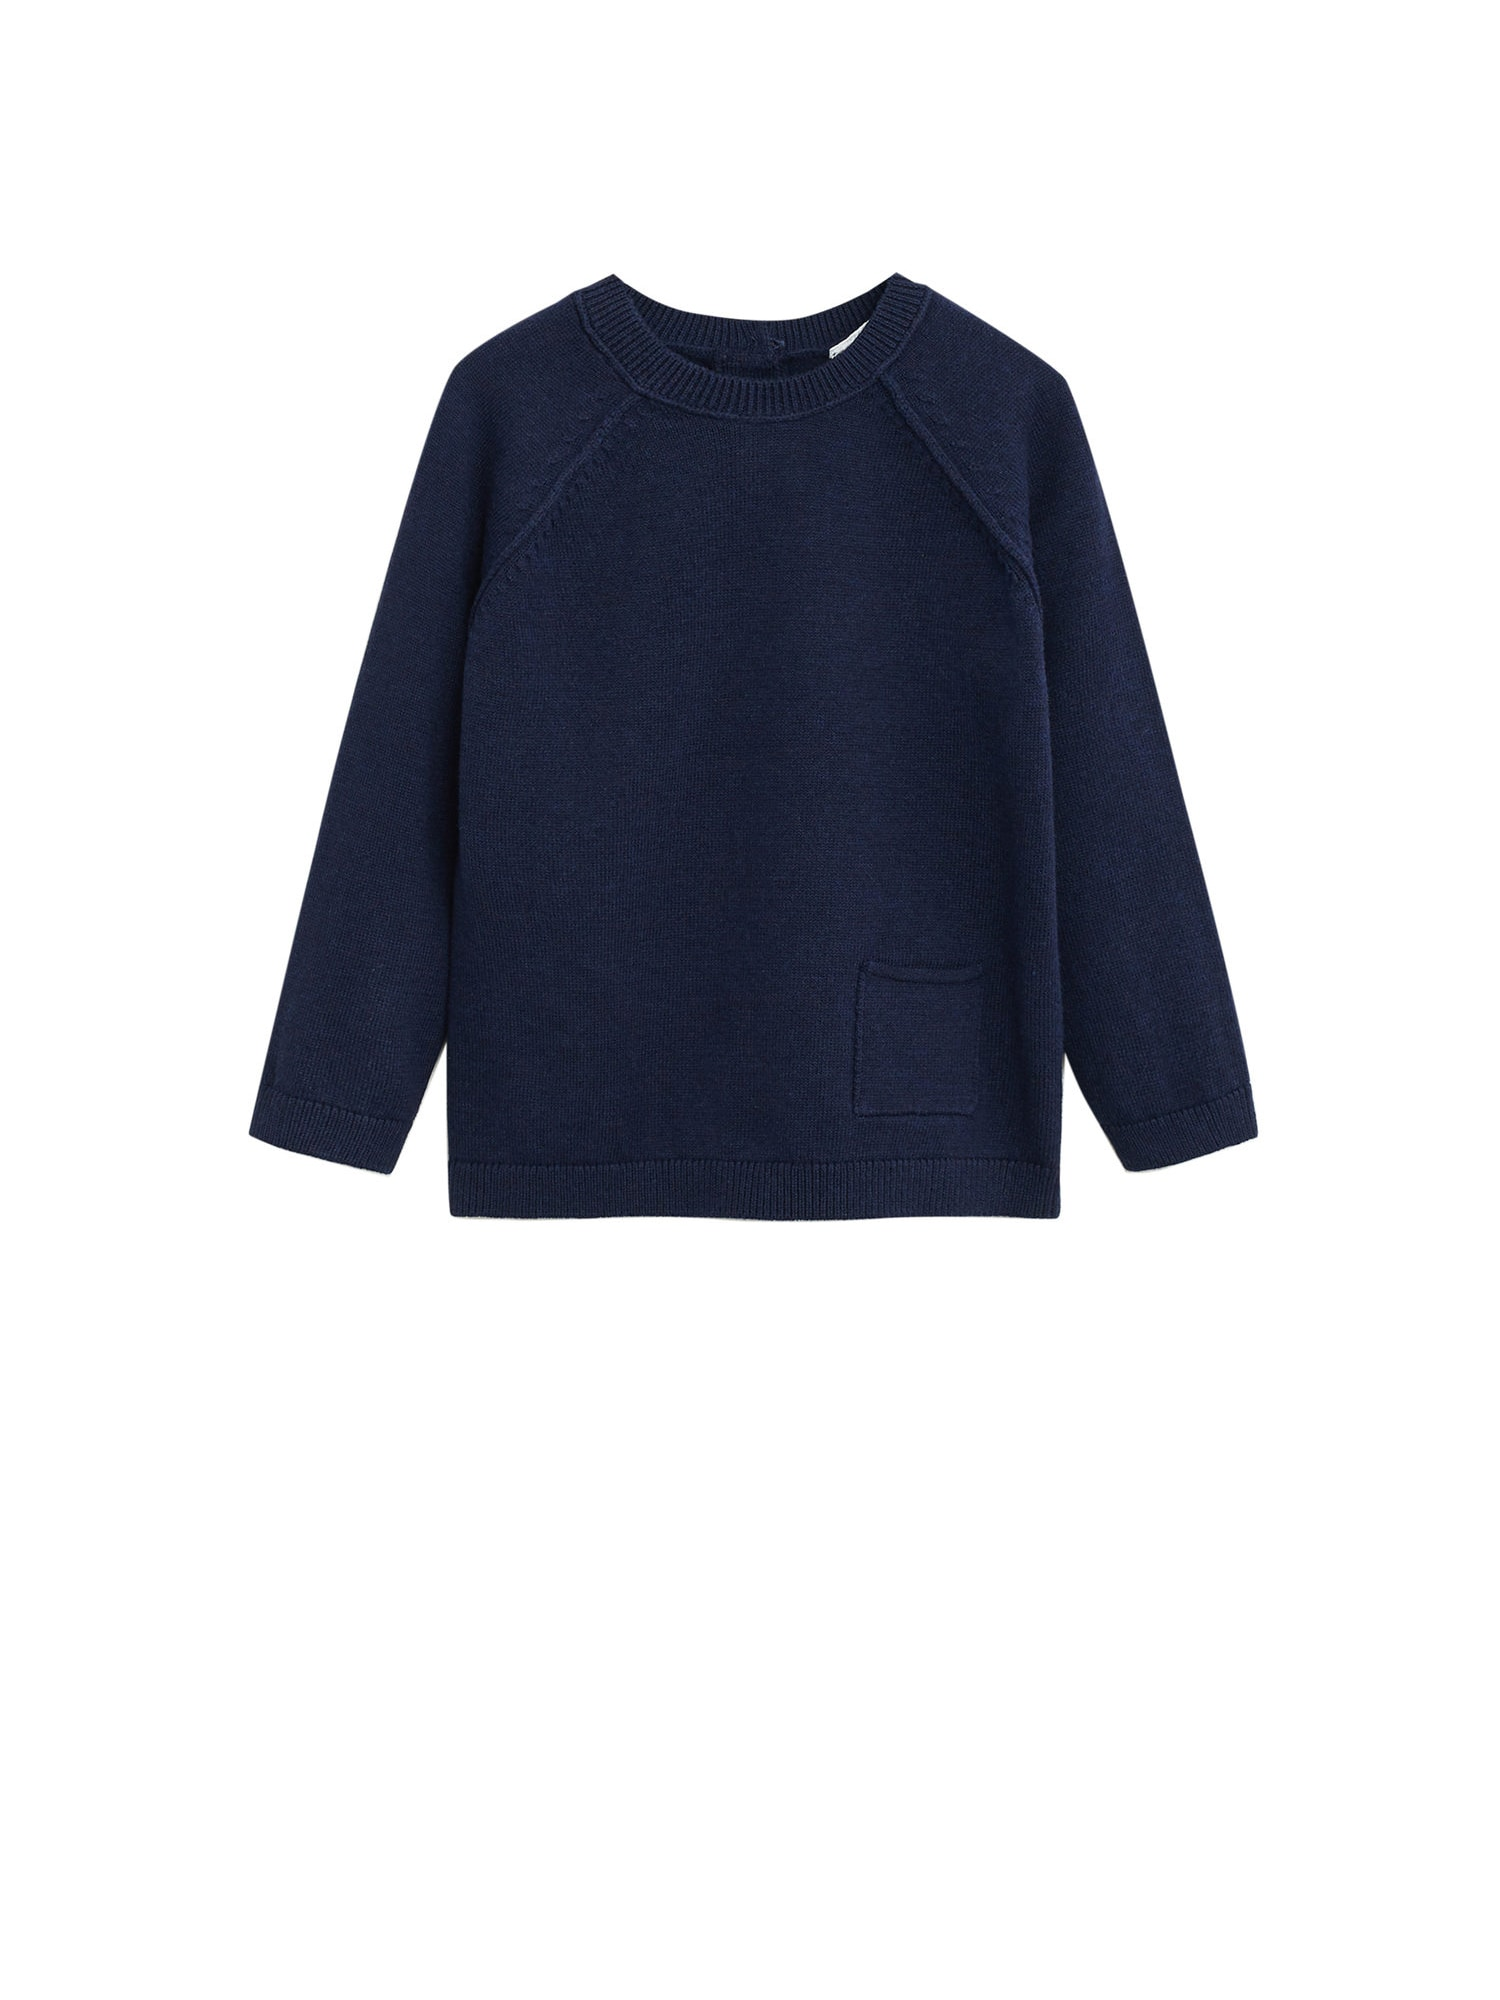 Miniboyoberteile - Pullover 'PETER' - Onlineshop ABOUT YOU